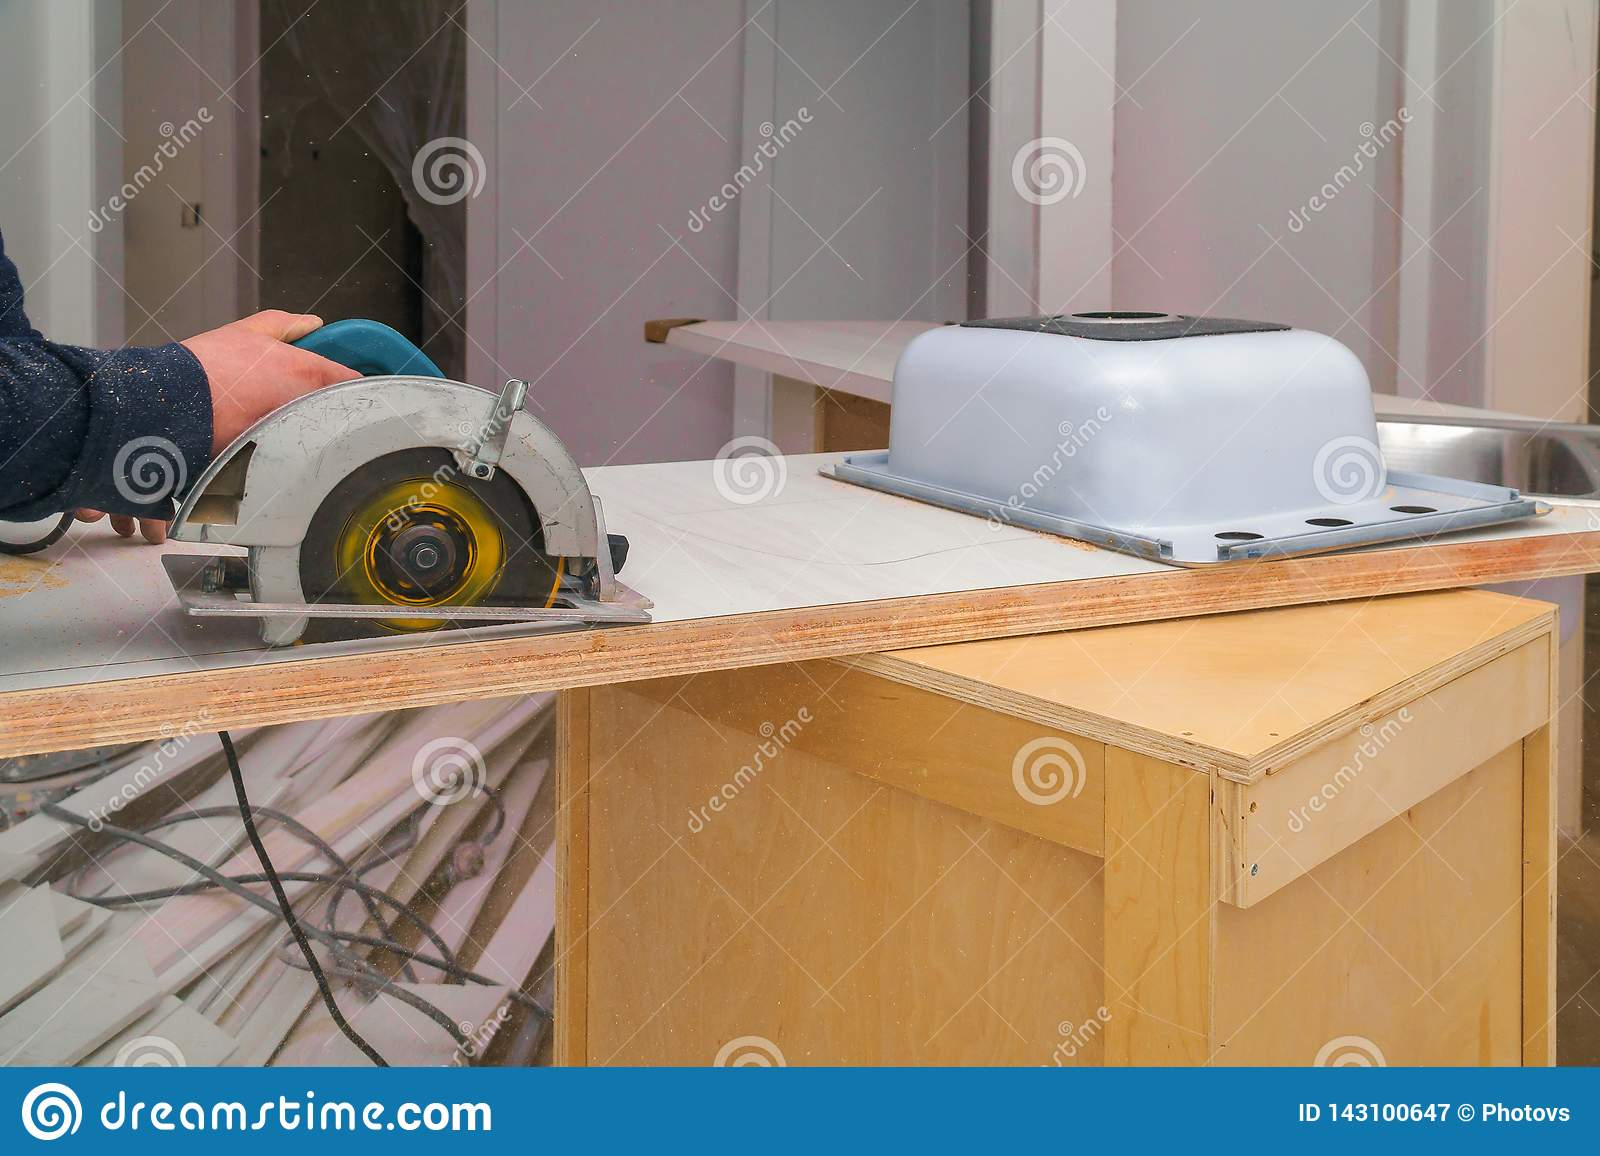 Carpenter Installing A Remodeling Cut Hole In A Laminate Counter Top Stock Image Image Of Manual Labor 143100647